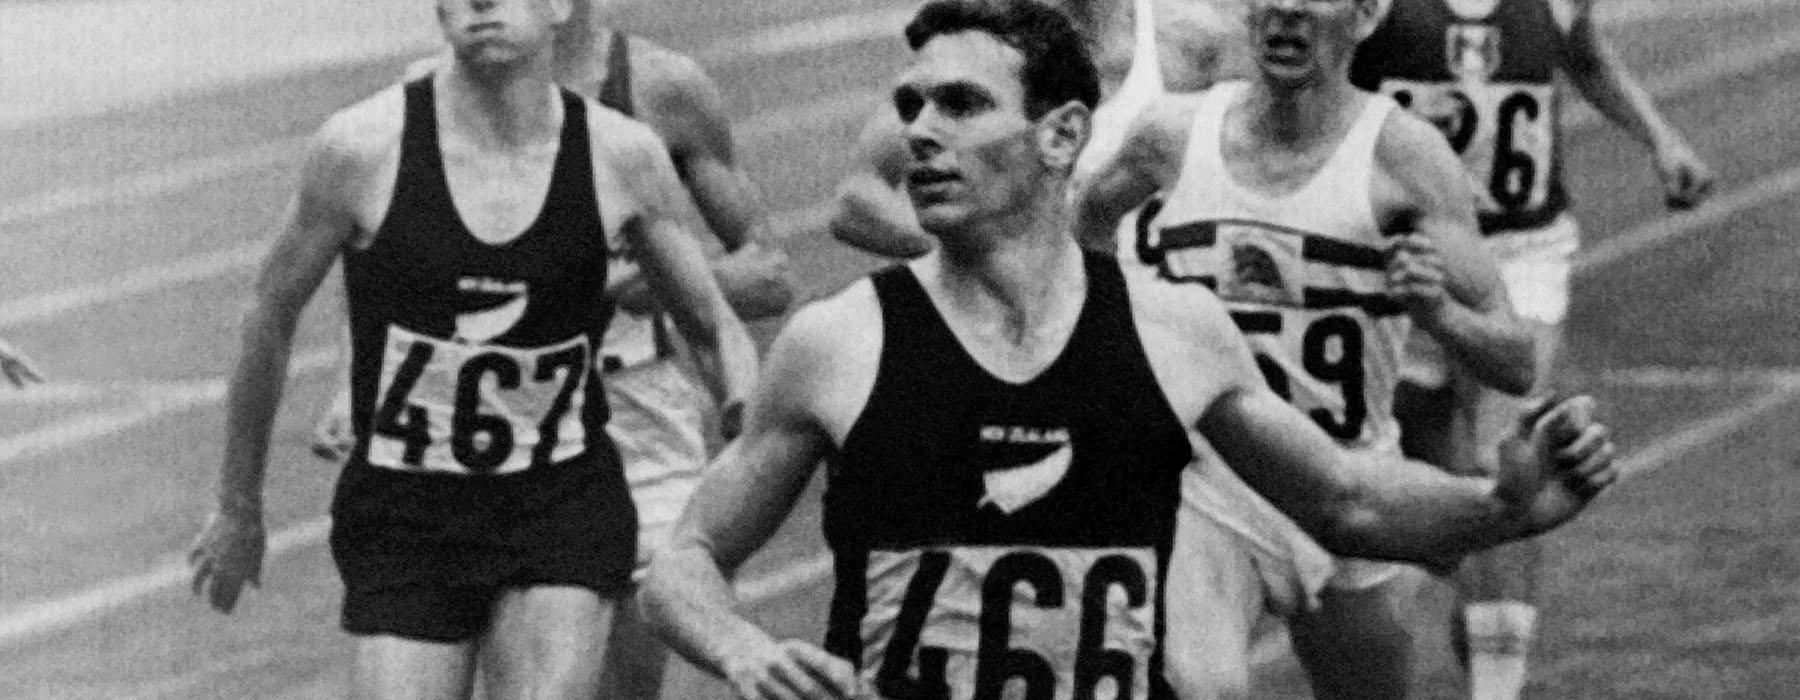 Peter Snell: Medal-Winning Magic